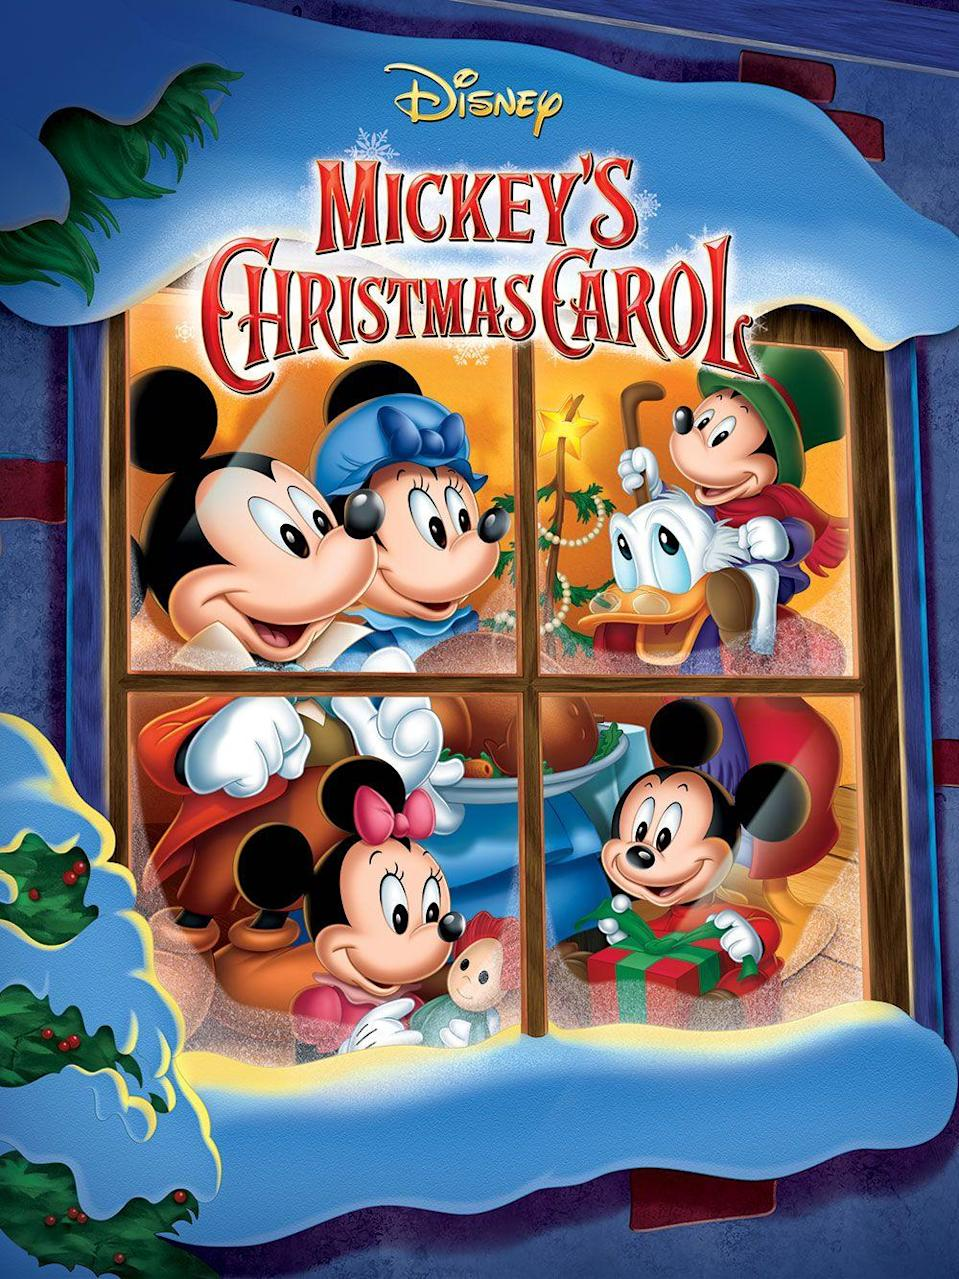 "<p>While there are plenty of <a href=""https://www.womansday.com/life/entertainment/g24227776/best-christmas-movies-for-kids/"" rel=""nofollow noopener"" target=""_blank"" data-ylk=""slk:Christmas movies for kids"" class=""link rapid-noclick-resp"">Christmas movies for kids</a> to stream this year, Disney movies bring a special kind of magic to the holiday. Disney is known for inspiring joy throughout the year and helping families make memories that last a lifetime, whether it's via a <a href=""https://www.womansday.com/life/travel-tips/a33323044/disney-world-magic-kingdom-reopening/"" rel=""nofollow noopener"" target=""_blank"" data-ylk=""slk:trip to Disney World"" class=""link rapid-noclick-resp"">trip to Disney World</a> or enjoying Disney TV shows, books, toys, and more. It's no wonder that during the festive holiday season, children and <a href=""https://www.womansday.com/life/g3218/disney-gifts-adults/"" rel=""nofollow noopener"" target=""_blank"" data-ylk=""slk:adults alike turn to Disney"" class=""link rapid-noclick-resp"">adults alike turn to Disney</a> to celebrate. If you can't actually spend the holiday with Mickey himself, having a Disney Christmas movie marathon is the next best thing. Luckily, there are several holiday Disney movies available you can stream either for free with a subscription, or that you can rent at an affordable price.</p><p>Plenty of Christmas movies can be found on <a href=""https://www.womansday.com/life/entertainment/a27126793/disney-streaming-platform-disney-plus/"" rel=""nofollow noopener"" target=""_blank"" data-ylk=""slk:Disney +"" class=""link rapid-noclick-resp"">Disney +</a>, but even if you don't have a subscription to the company's premium streaming service you can also find holiday Disney films across Netflix, Hulu, and Amazon. Disney's holiday offerings range from animated films with characters you know and love, like <em>Mickey's Once Upon A Christmas</em>, to live action comedies like <em>Home Alone</em> and <em>The Santa Clause</em>. You can introduce some of the timeless classics to your kids too, like <em>Miracle on 34th Street</em> and <em>Babes In Toyland</em>, as well as romantic comedies for older kids like <em>12 Dates of Christmas</em>. With so many movie options, you don't need to wait until Christmas to get into the holiday spirit. Cozy up with some <a href=""https://www.womansday.com/life/g34620704/family-christmas-pajamas/"" rel=""nofollow noopener"" target=""_blank"" data-ylk=""slk:family Christmas pajamas"" class=""link rapid-noclick-resp"">family Christmas pajamas</a>, and let these Disney movies fill you with yuletide cheer.</p>"